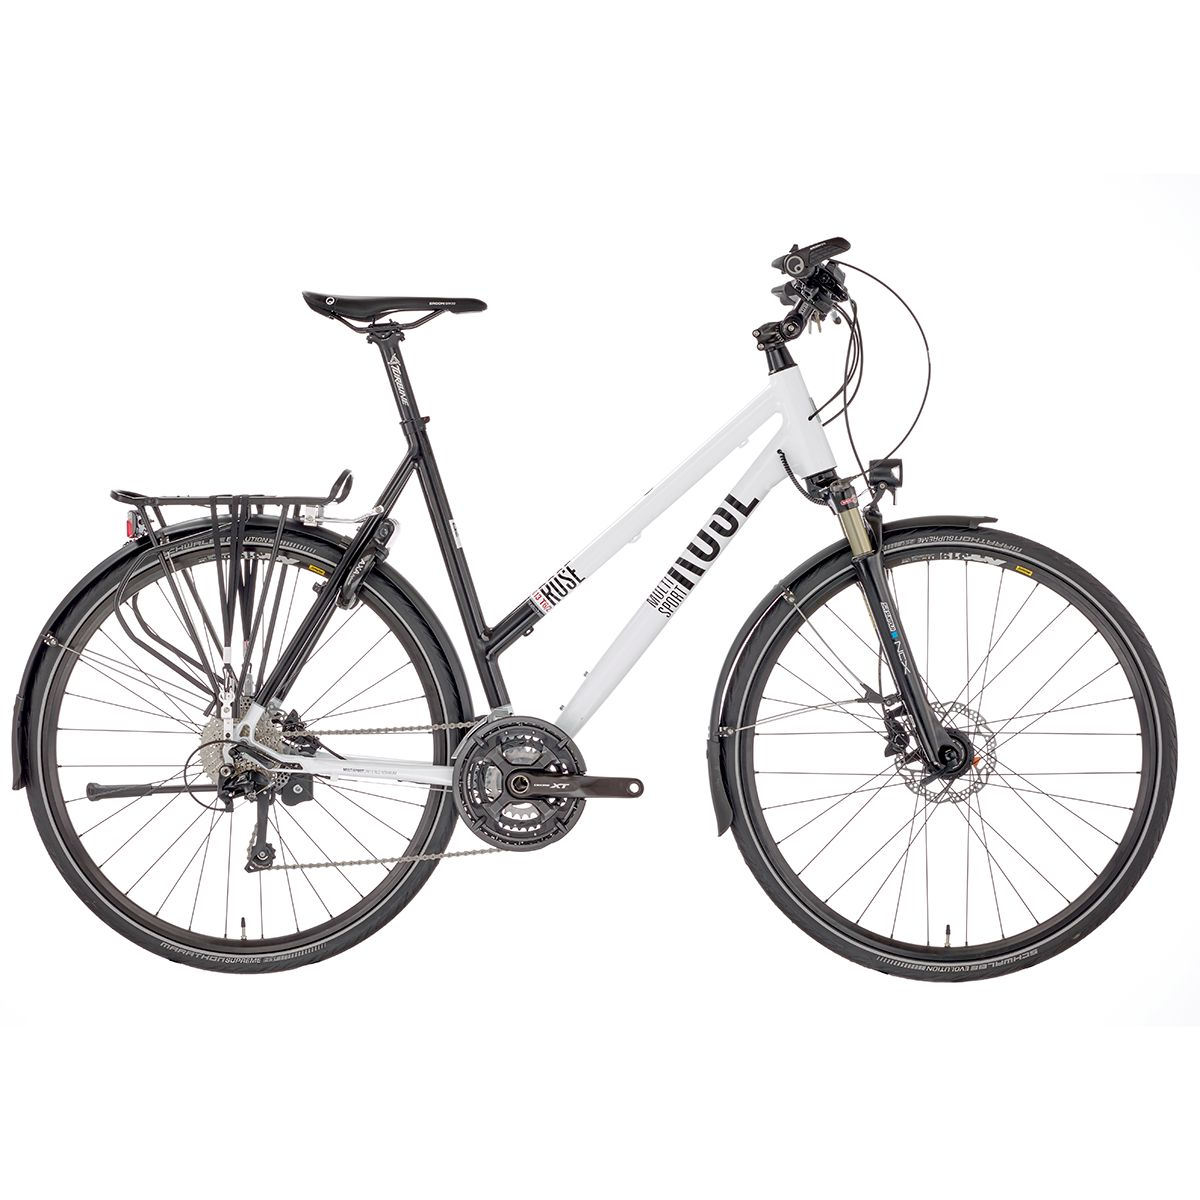 TREKKING 17 MULTISPORT 3 LADIES Showroom Bike Size: 23